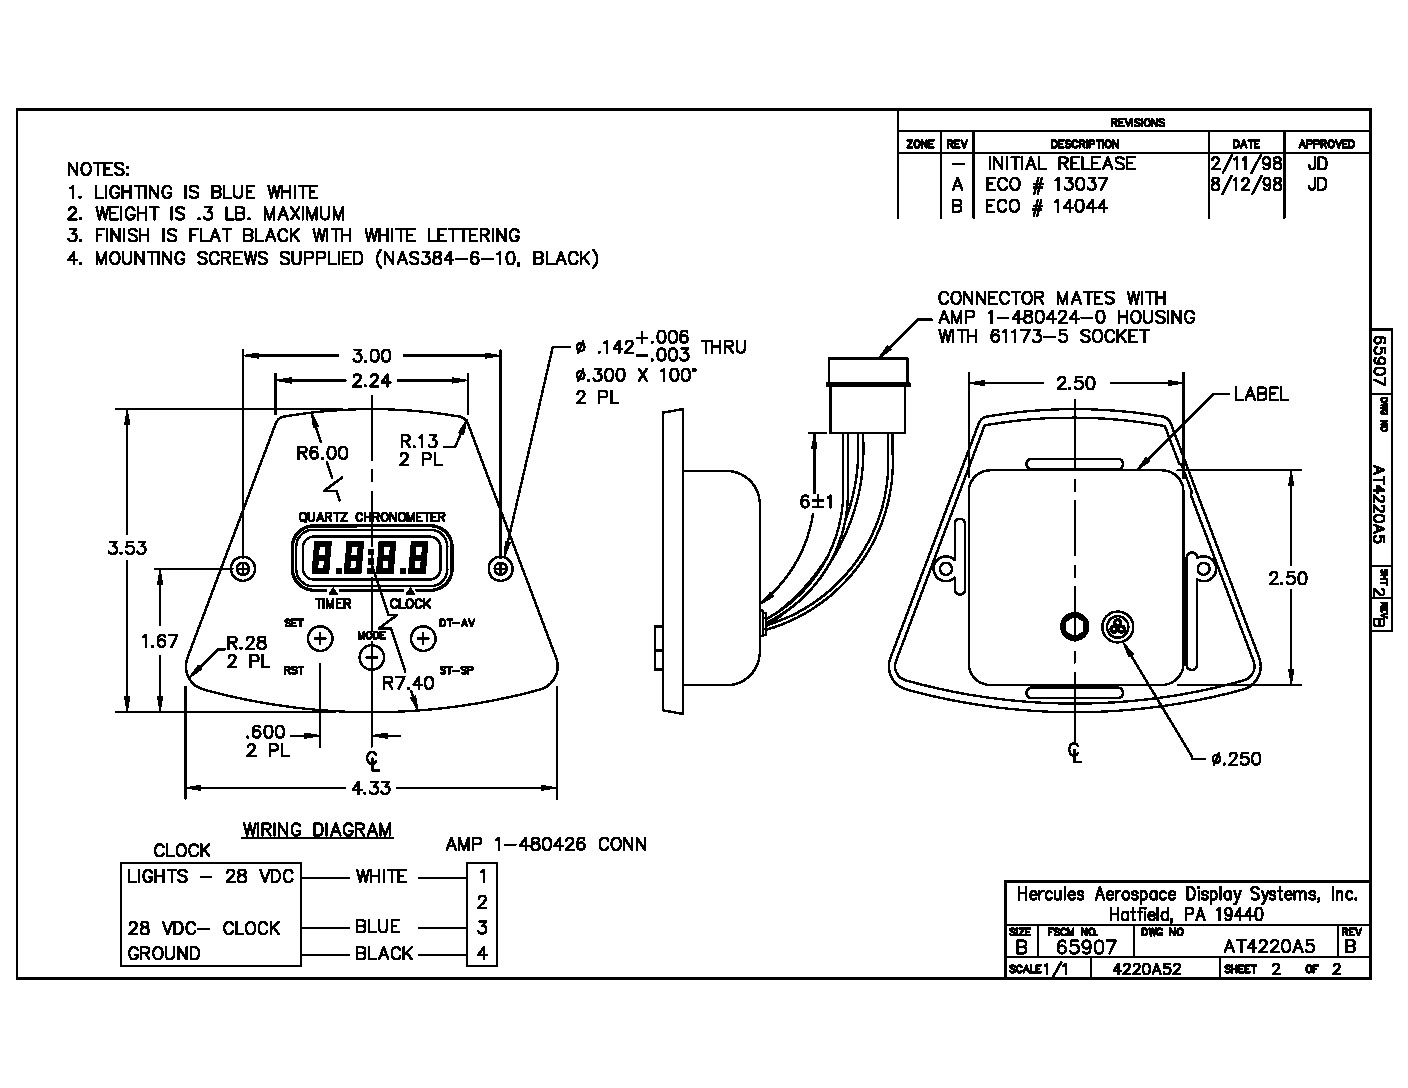 thumbnail of Ads lc-2a5 Install Drawing